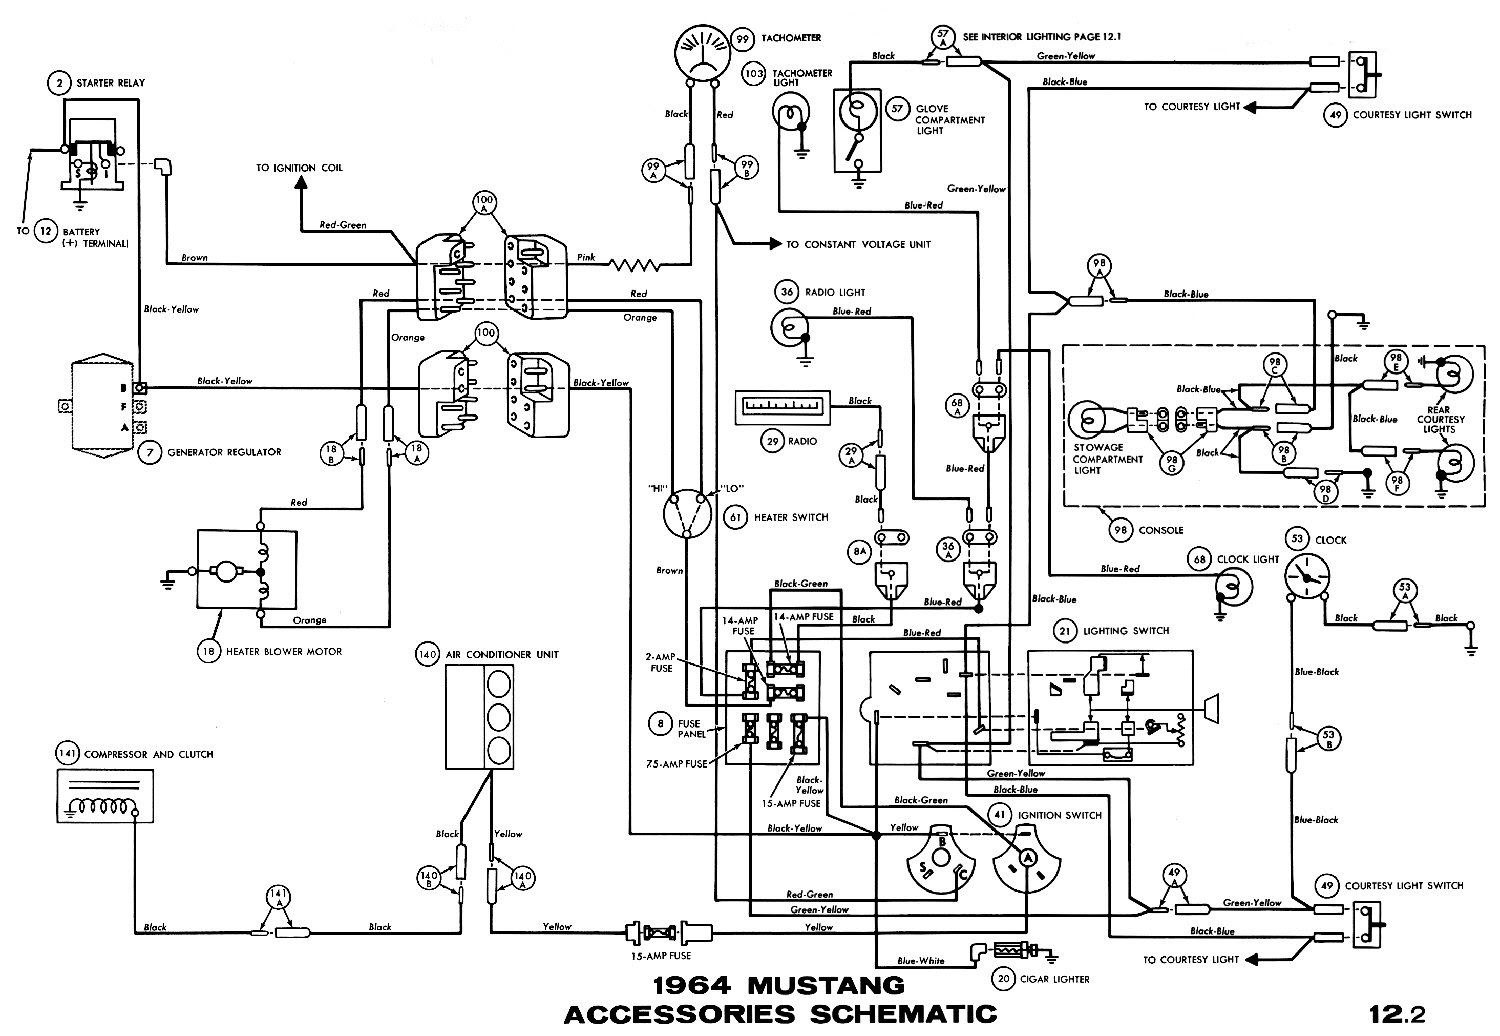 69 Mustang Radio Wiring Diagram Wiring Diagrams Chatter Chatter Chatteriedelavalleedufelin Fr